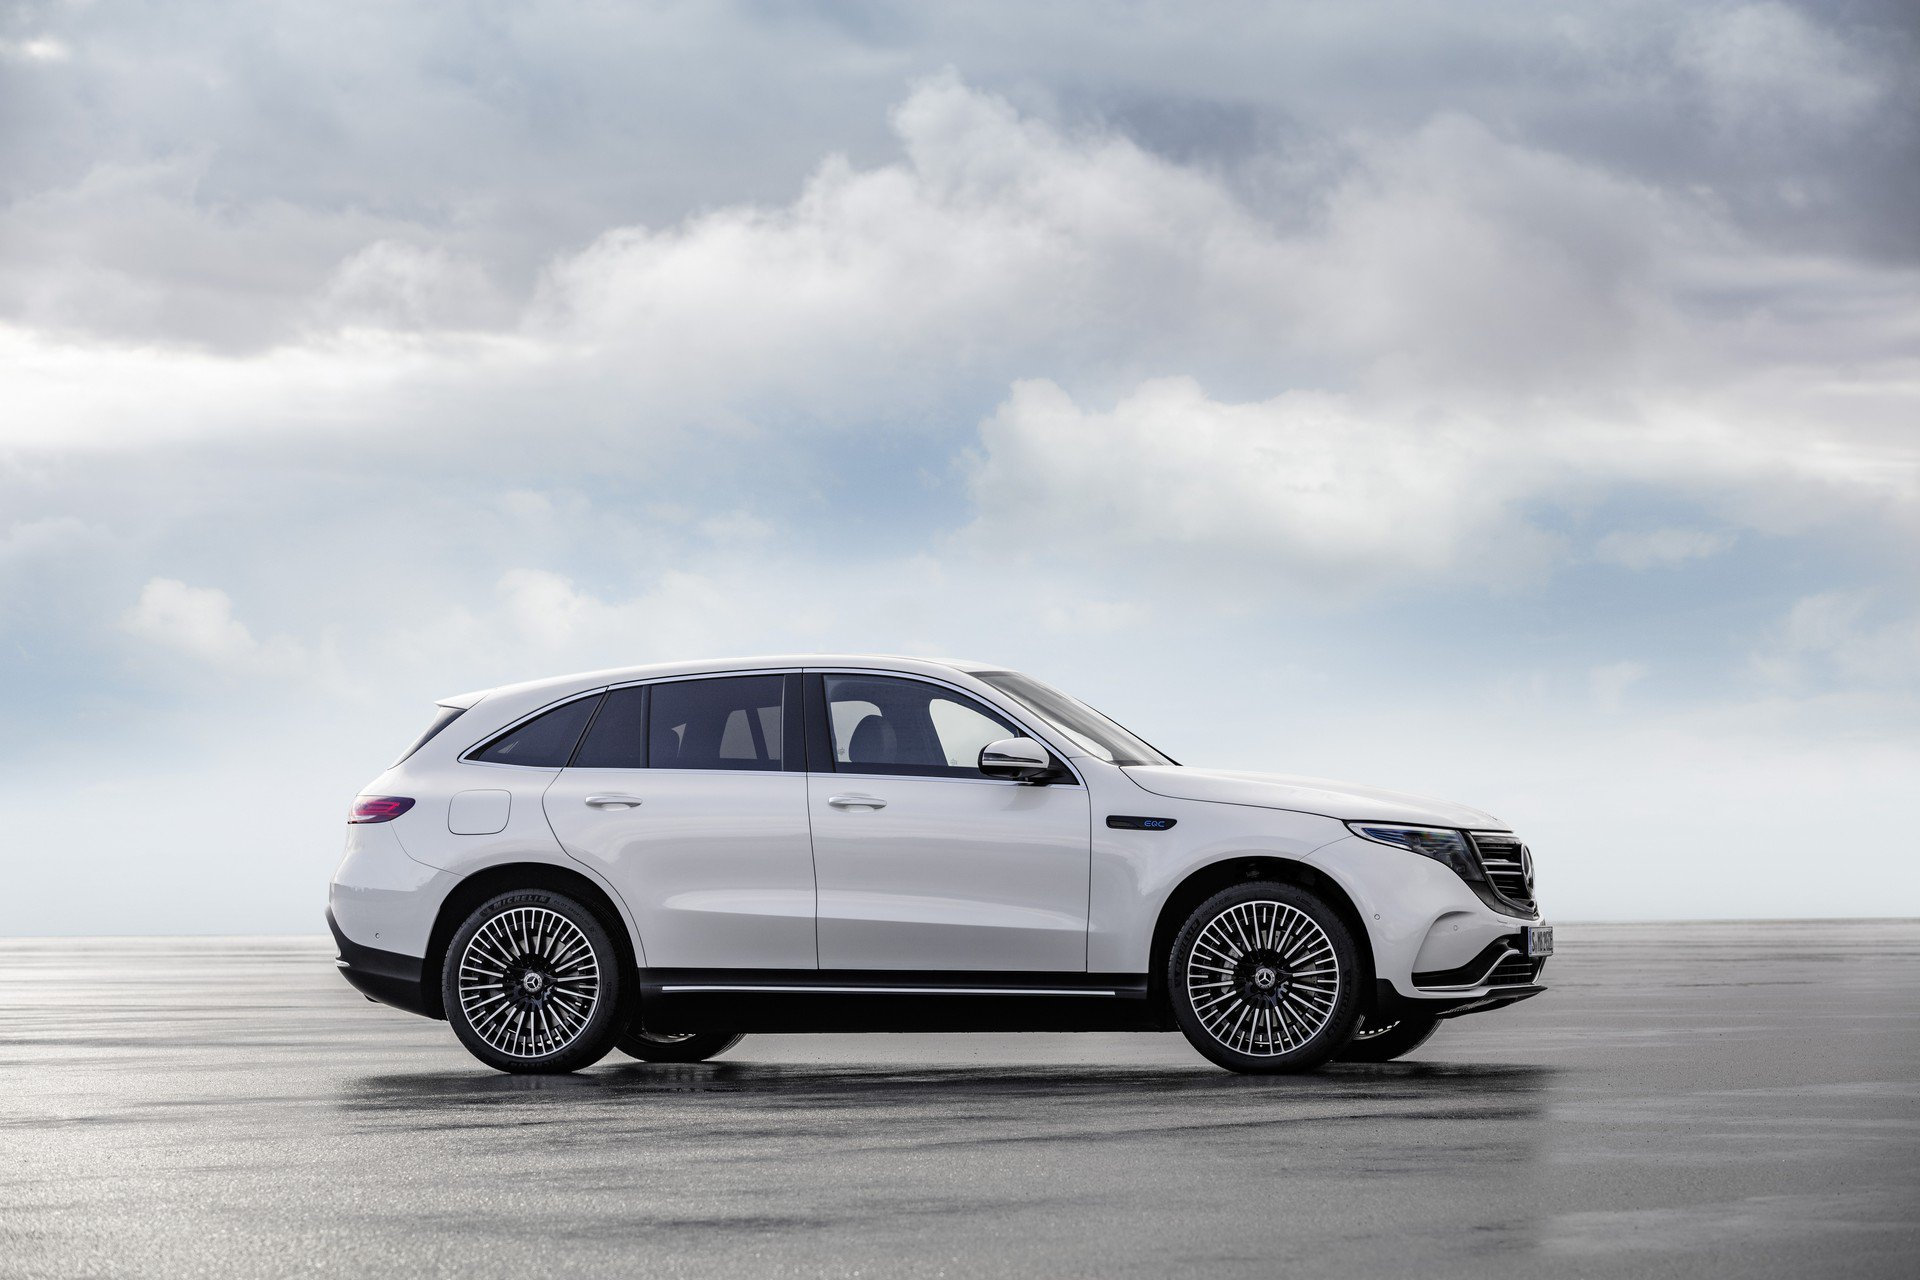 2020 mercedes-benz eqc 400 4matic goes official  comes with two electric motors